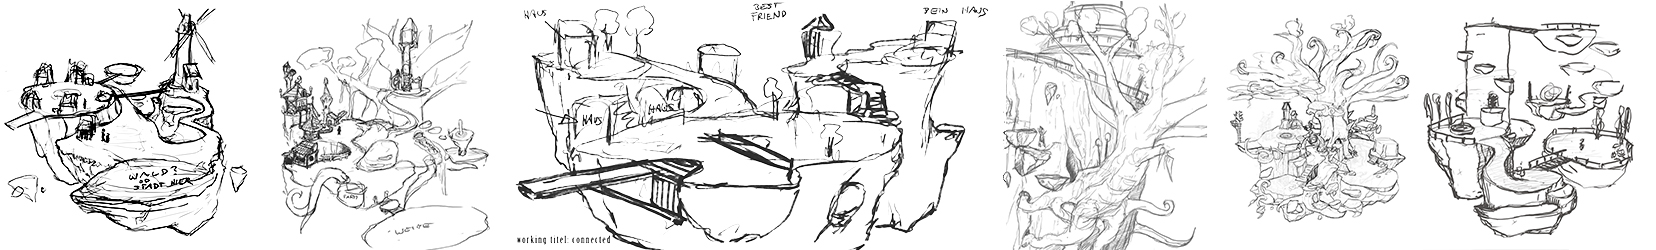 environment thumbnails sketches